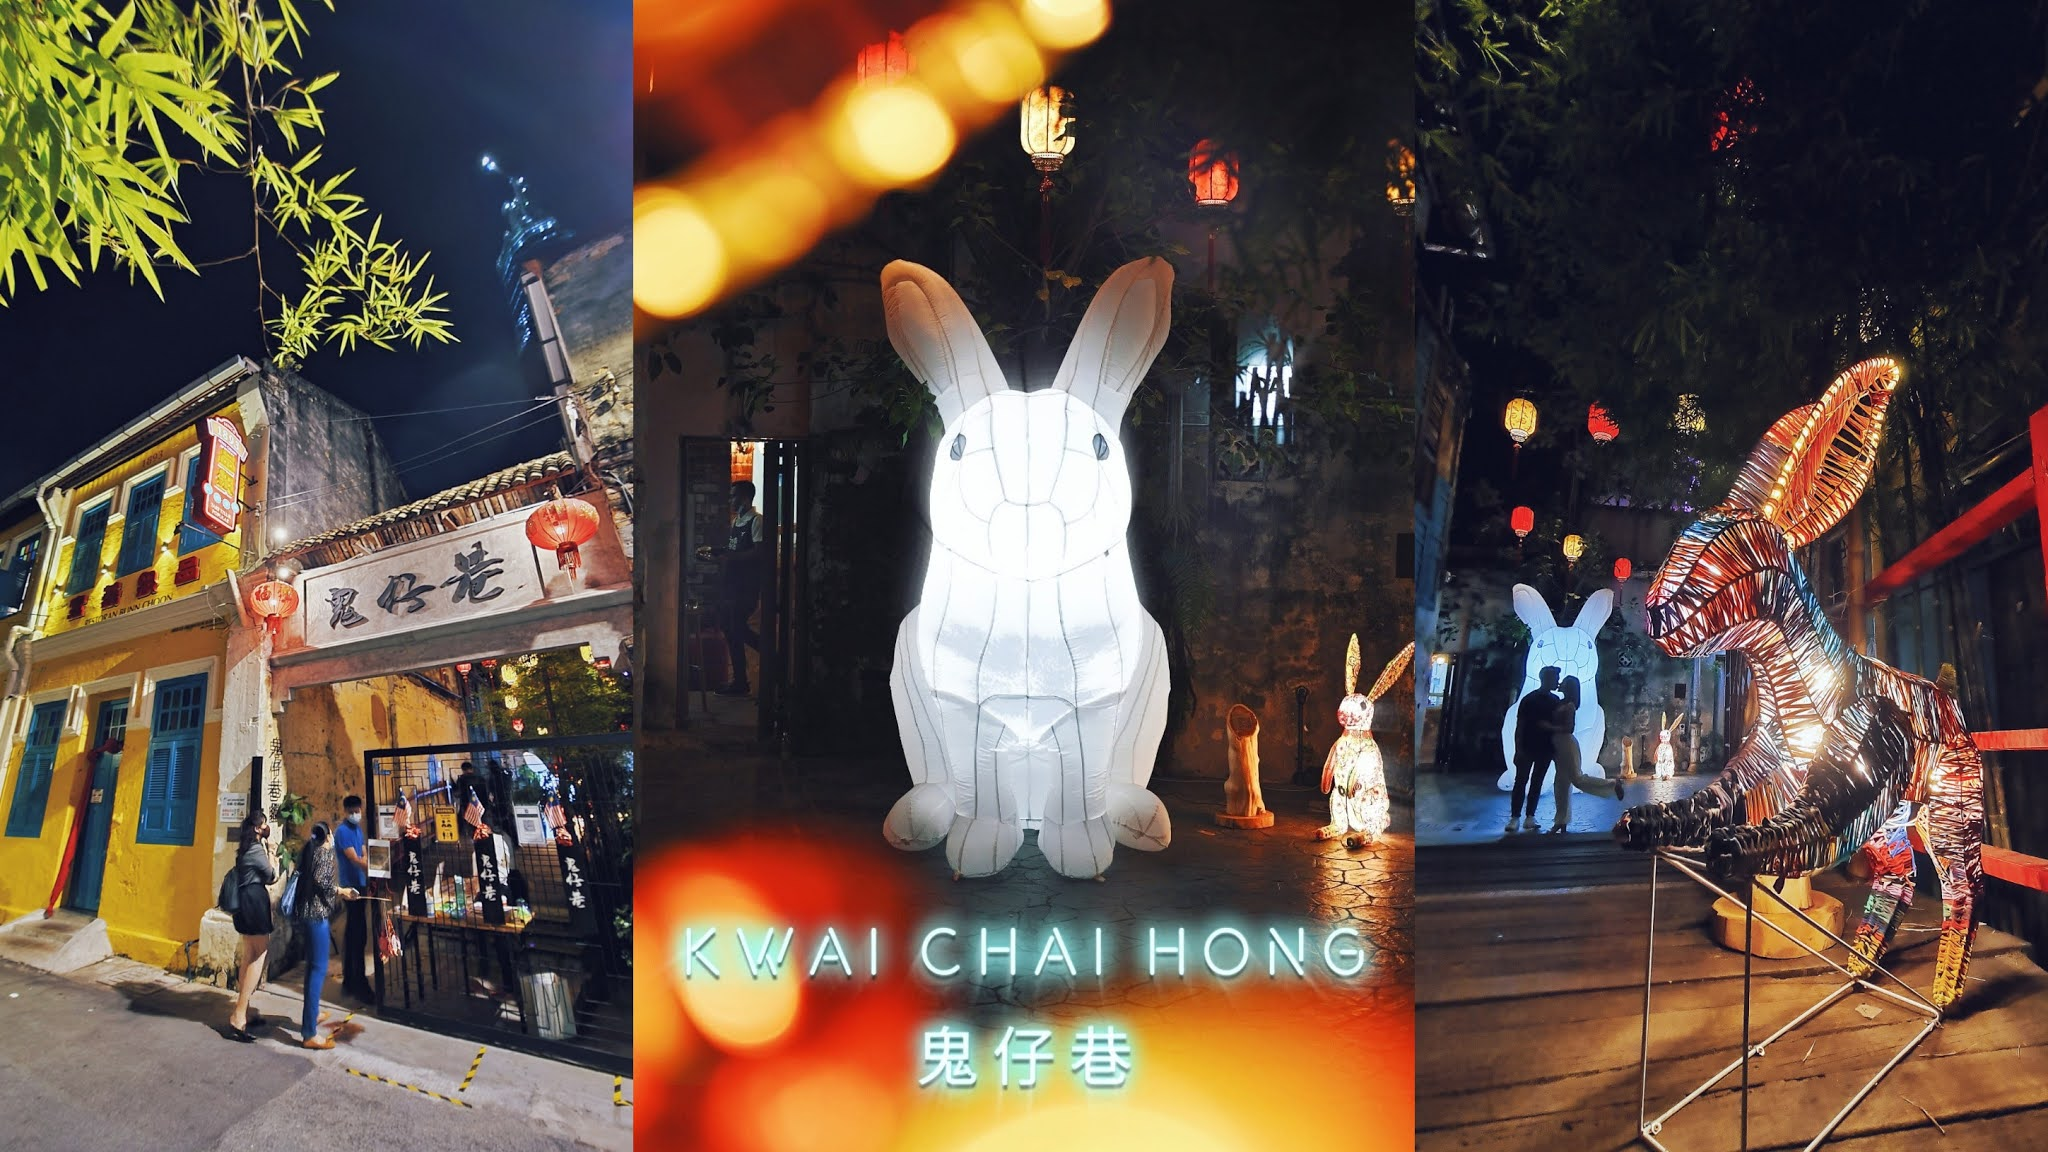 鬼仔巷 KWAI CHAI HONG 2020 MID AUTUMN DECORATION - JADE RABBITS 🐇 | INSTAWORTHY PLACE IN KL WITH 8 MALAYSIAN ARTWORKS